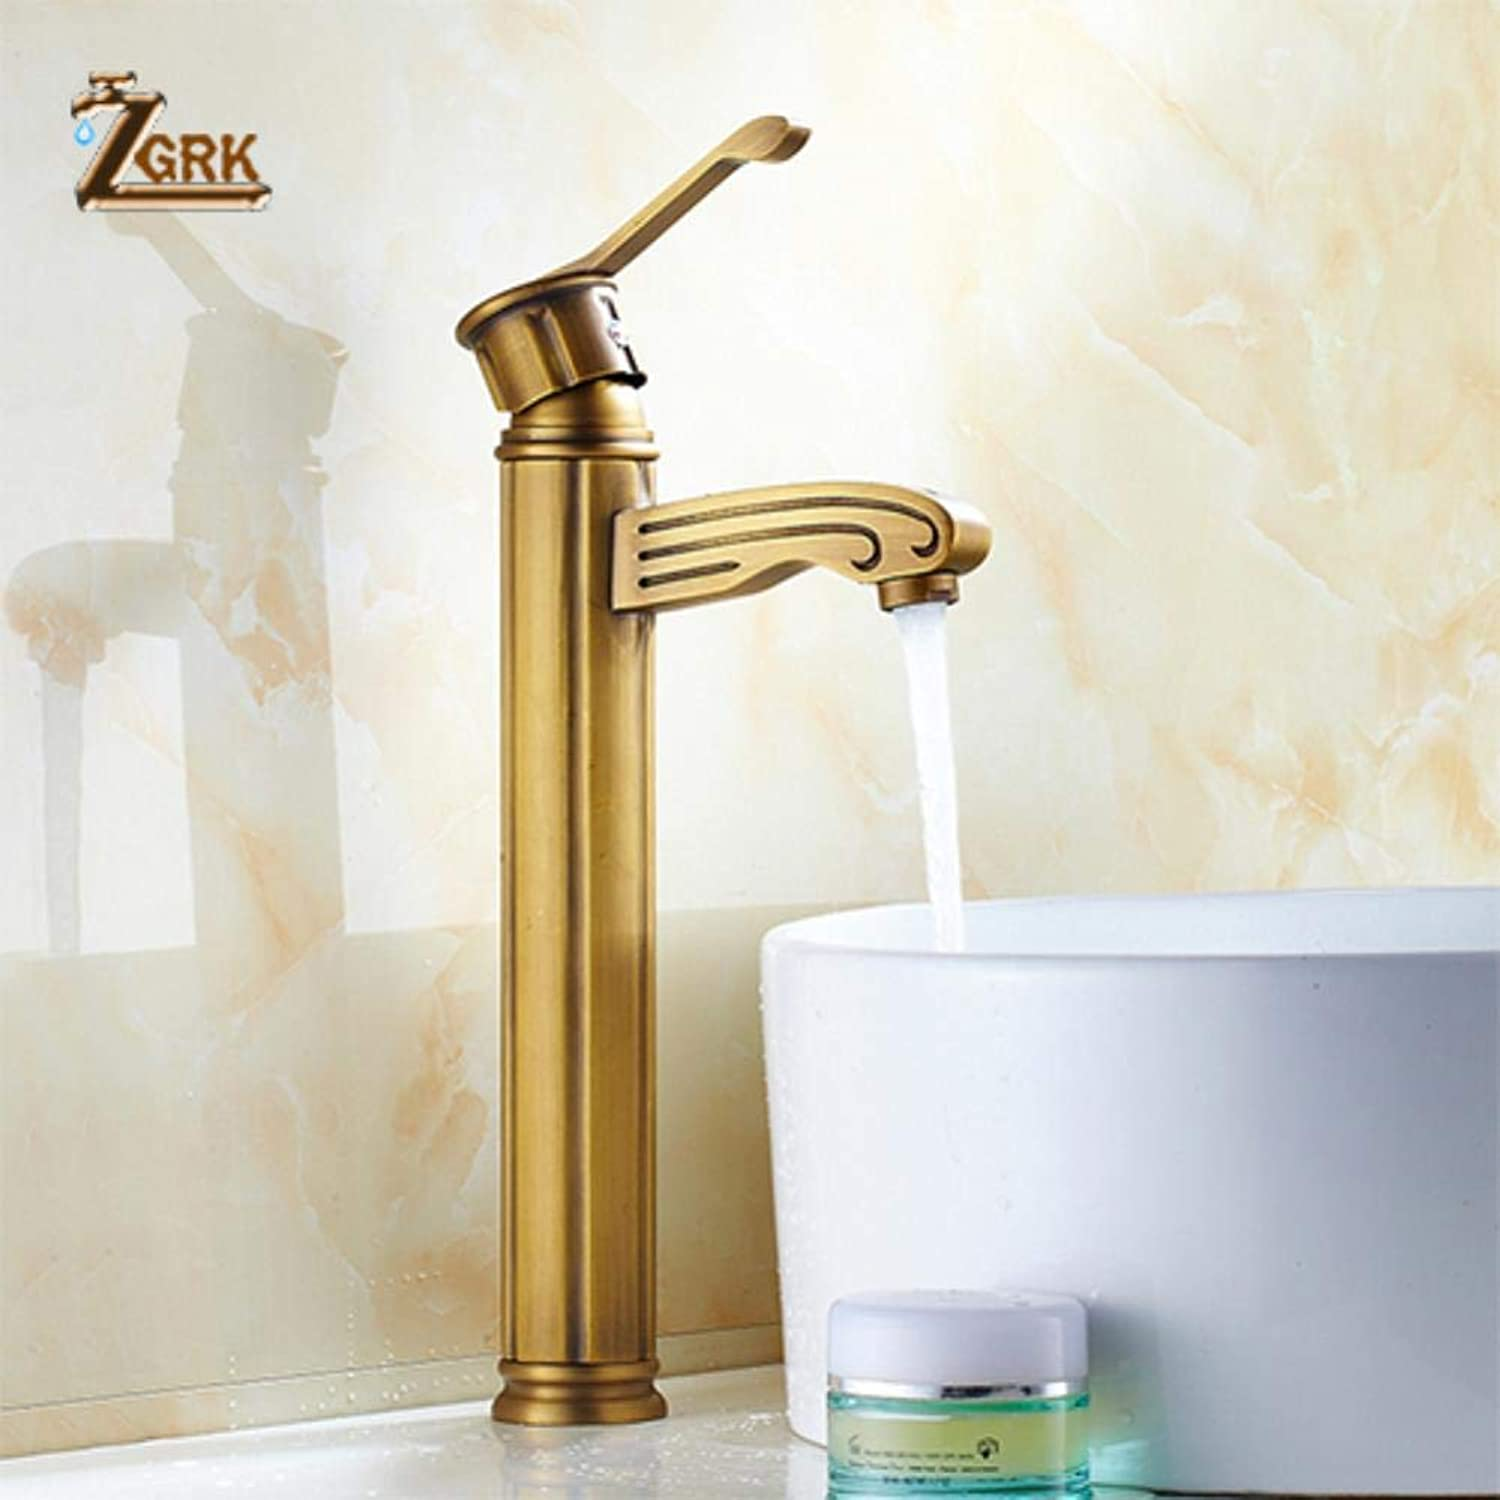 ZGRK Vintage Antique Brass redary Single Level Single Hole Kitchen Sink Mixer Tap Bathroom Sink Mixer Taps bathroom furniture fitting A-176